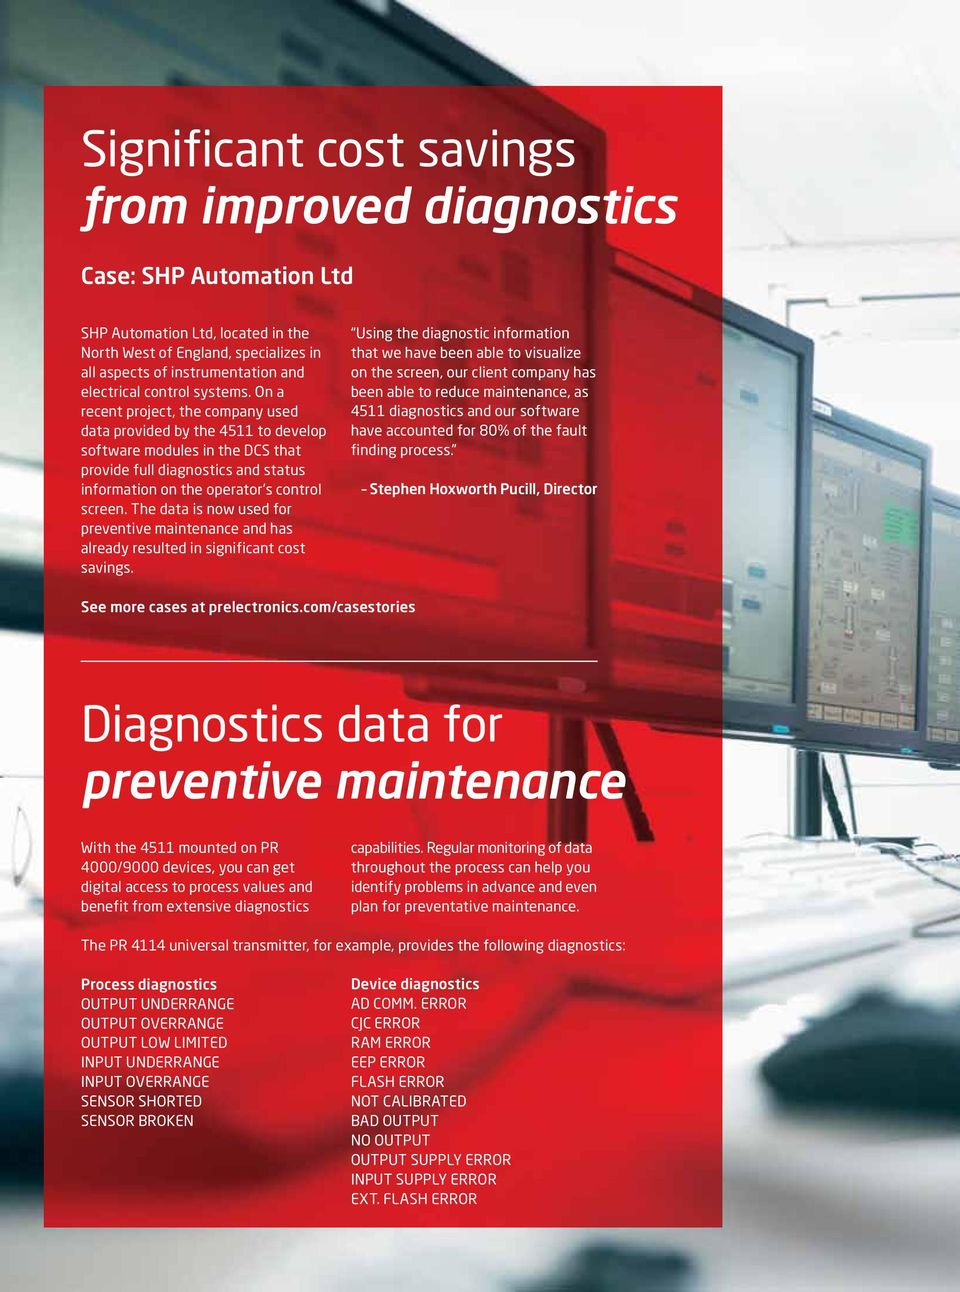 On a recent project, the company used data provided by the 4511 to develop software modules in the DCS that provide full diagnostics and status information on the operator s control screen.